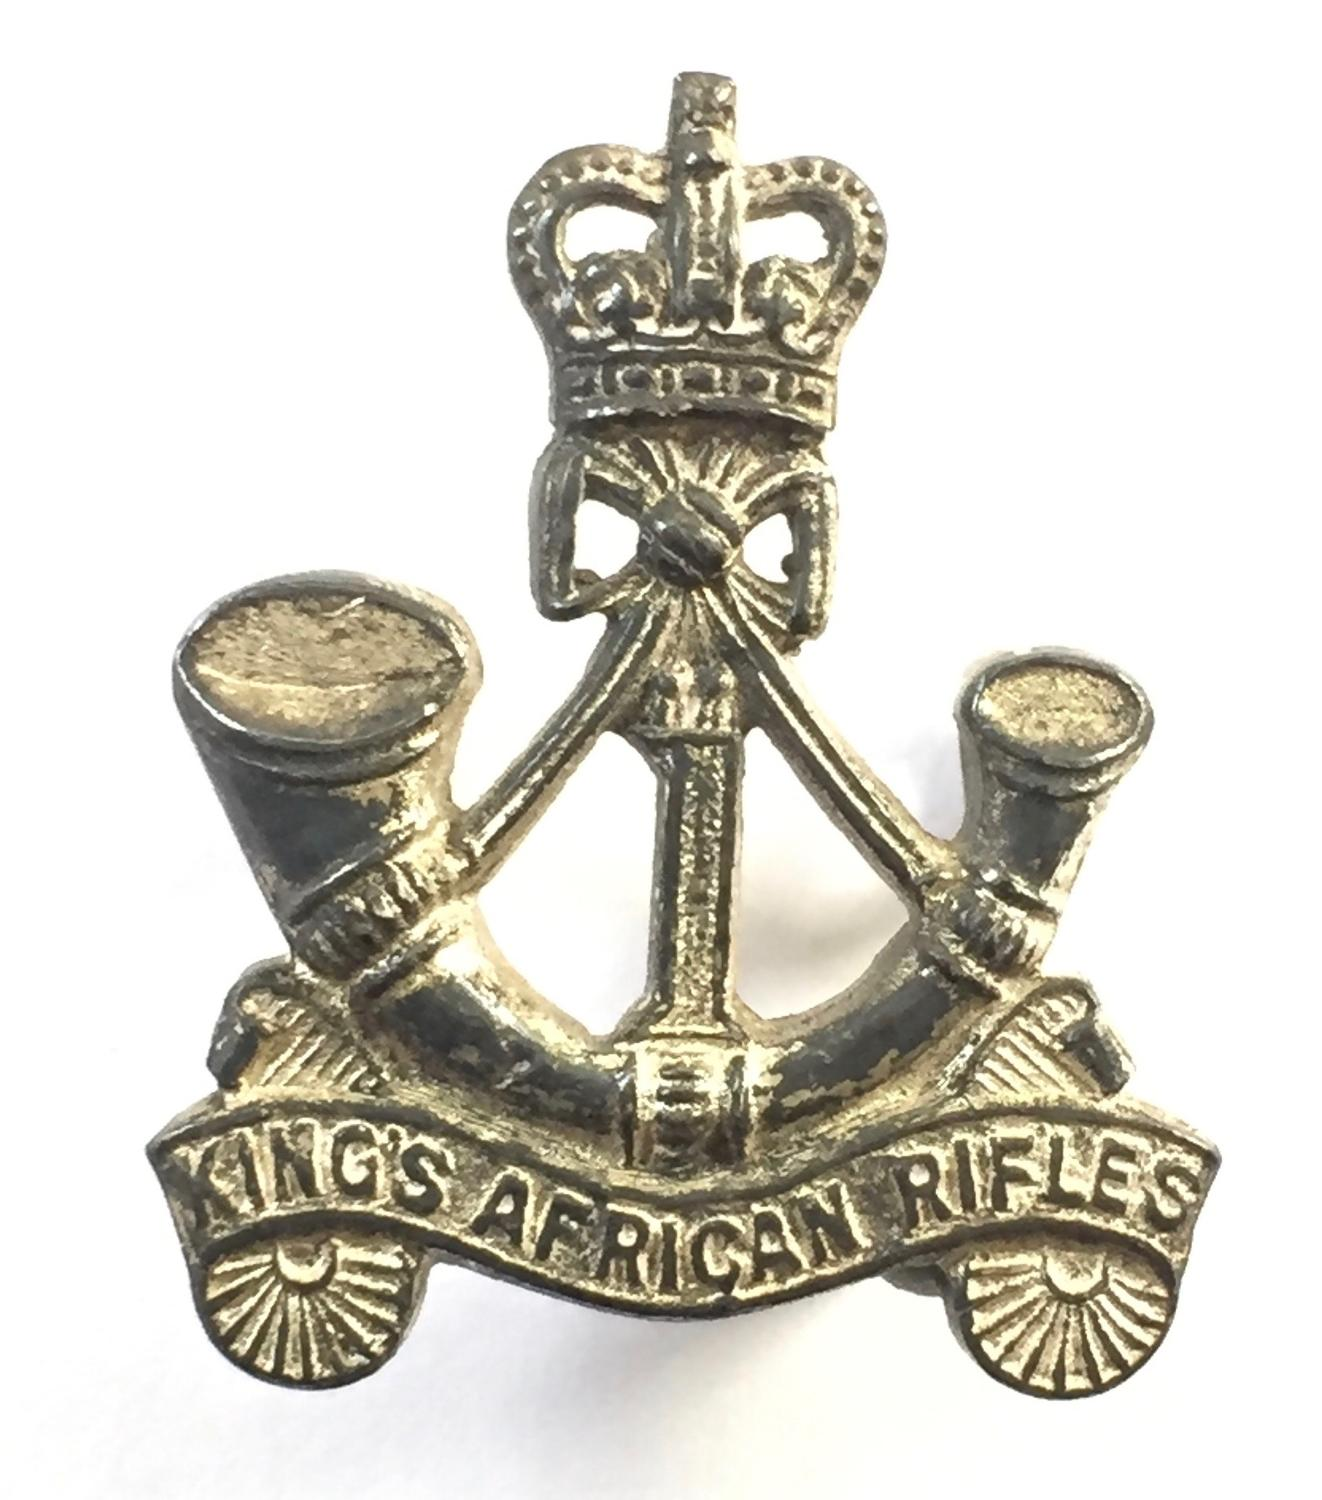 1st King's African Rifles Officer's silver cap badge.